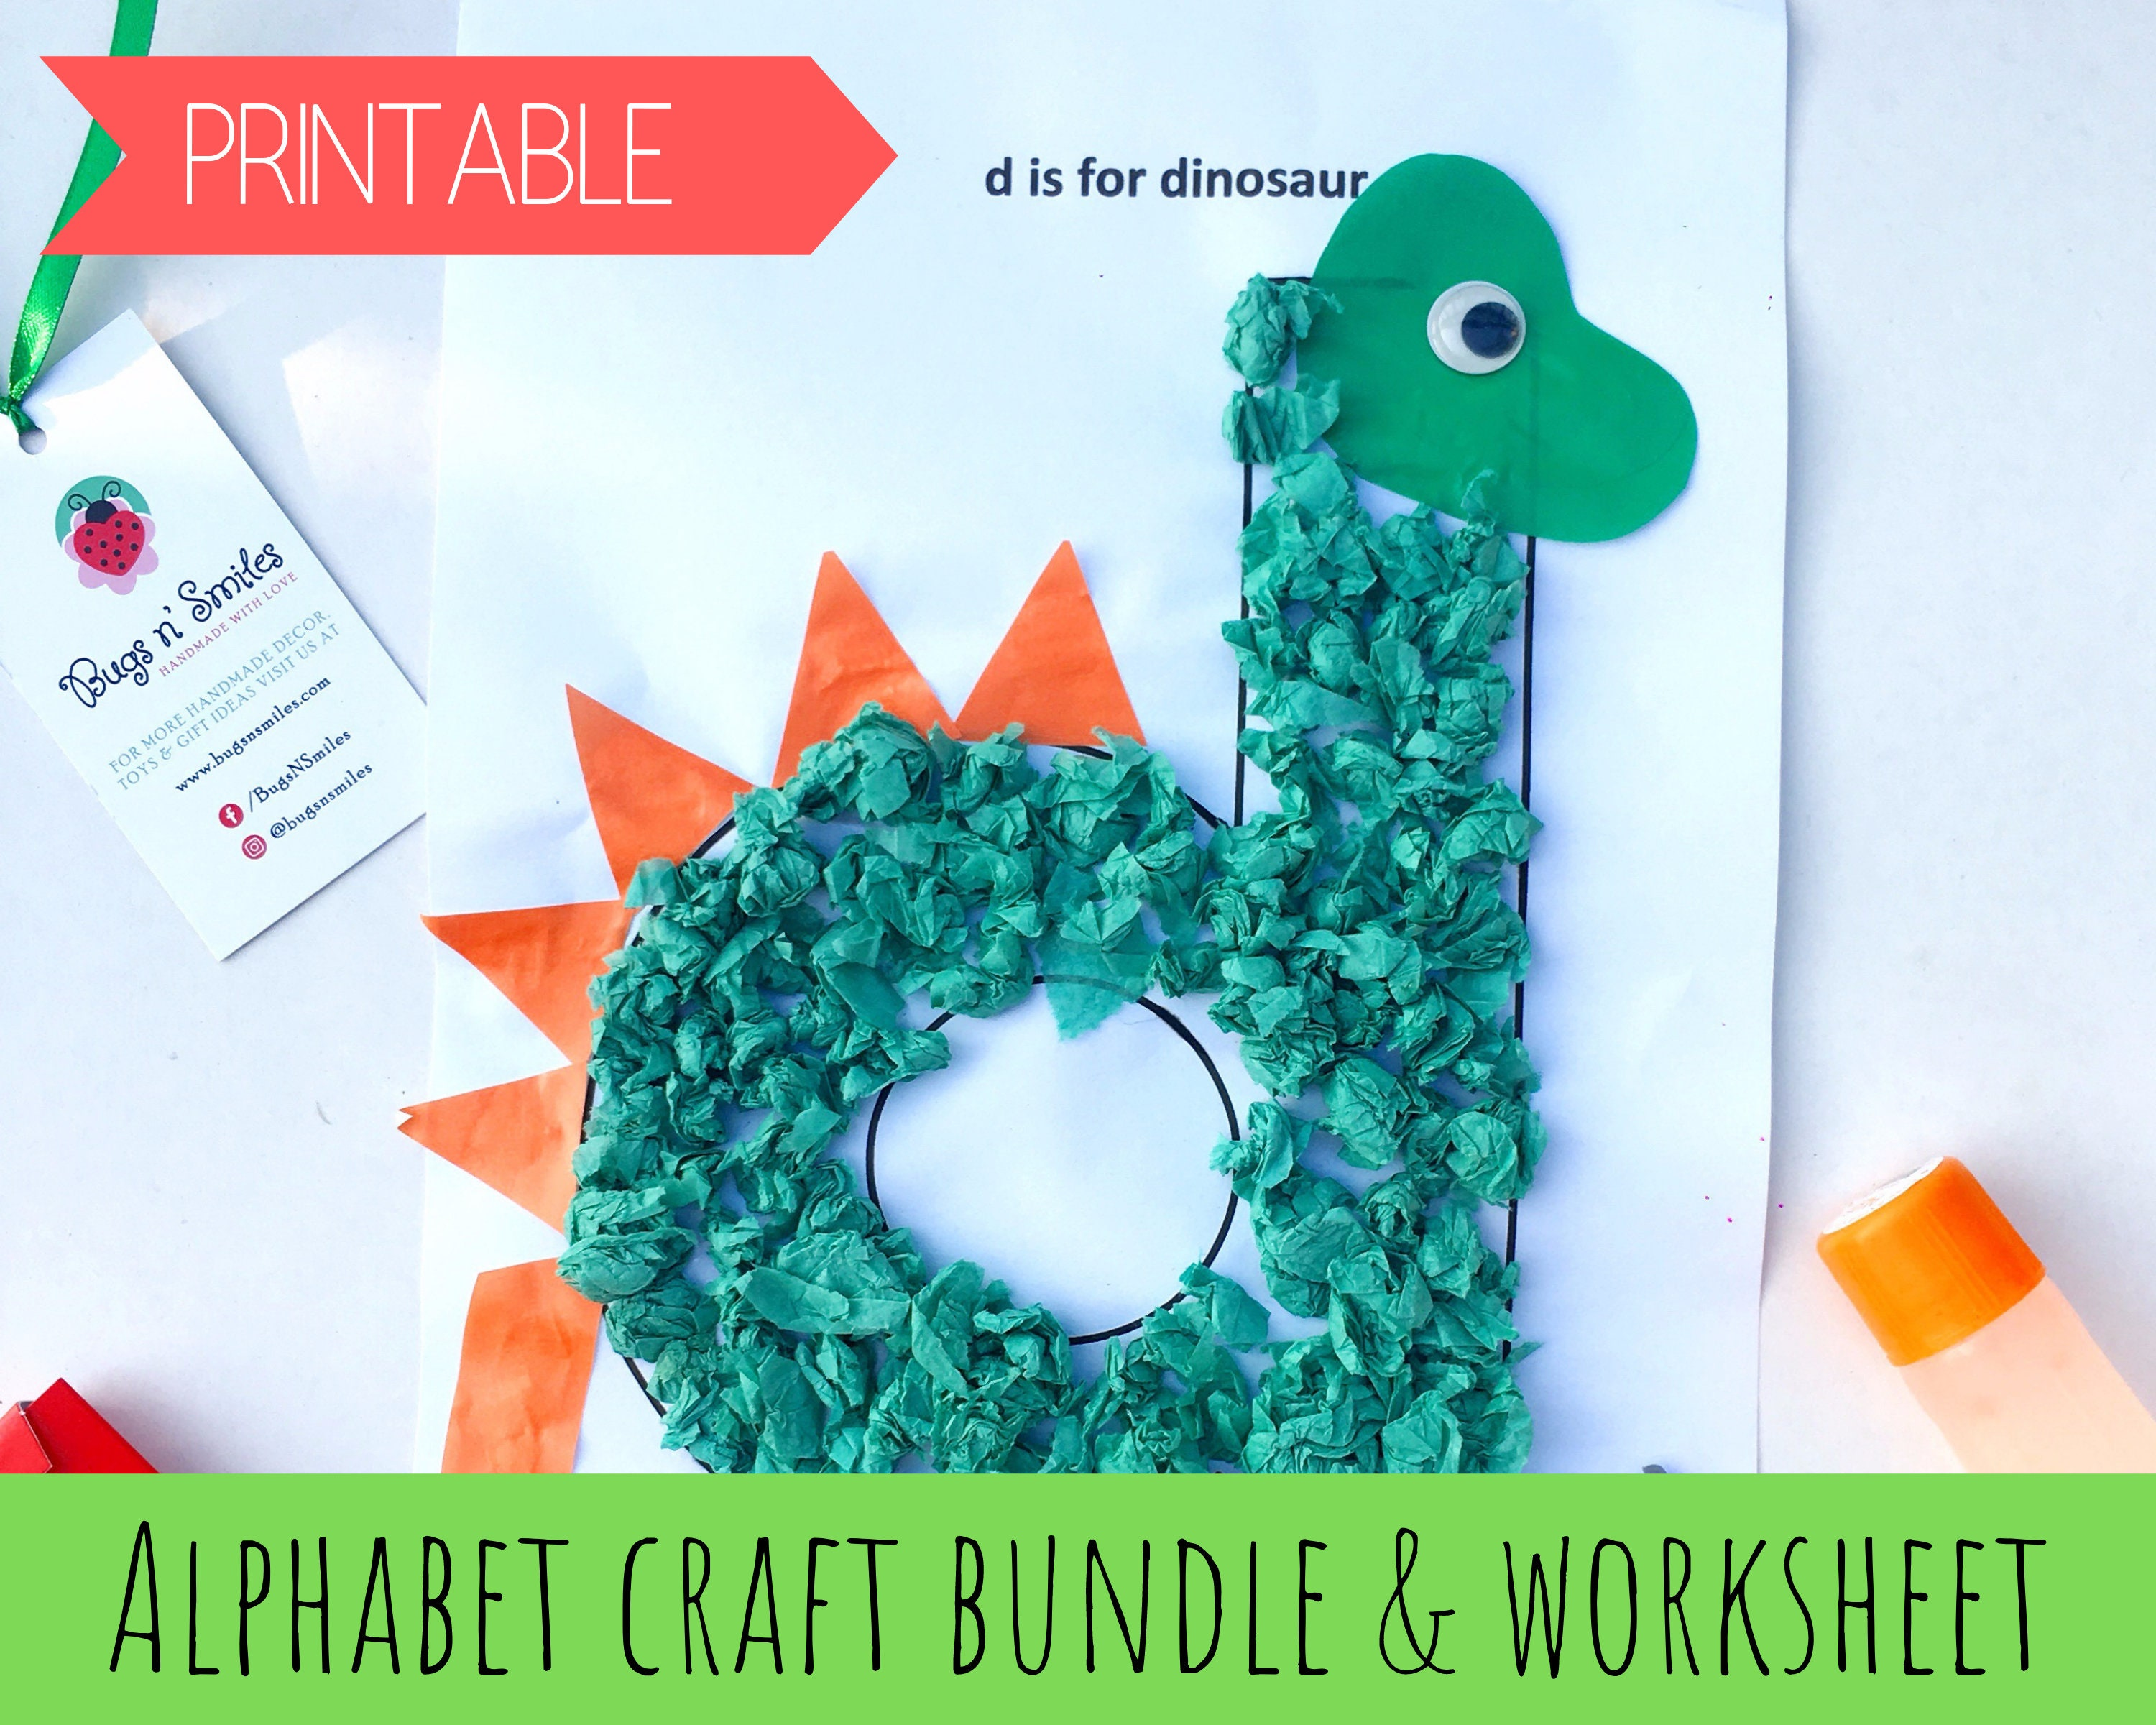 Alphabet Worksheets For Preschoolers Alphabet Crafts For Kindergartener Alphabet Craft Printables Abc Crafts For Toddlers Teacher Aid